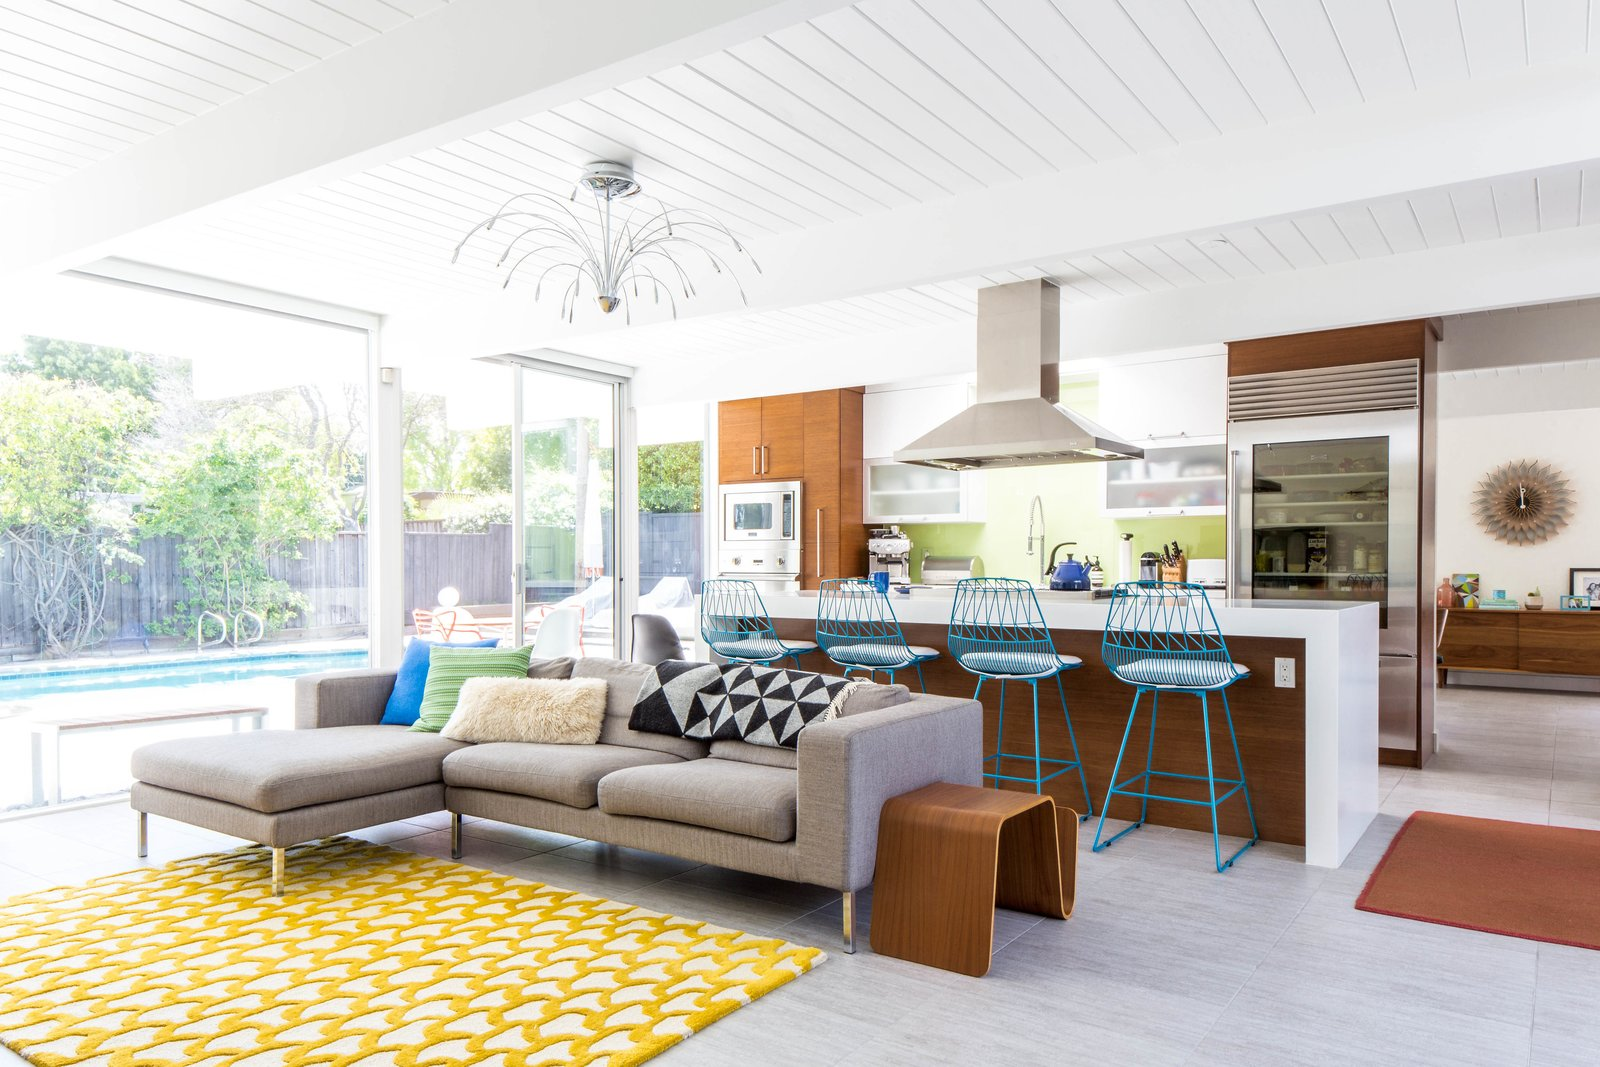 Charming An Interior Designer Launches Her Career By Renovating Her Familyu0027s  Midcentury Eichler